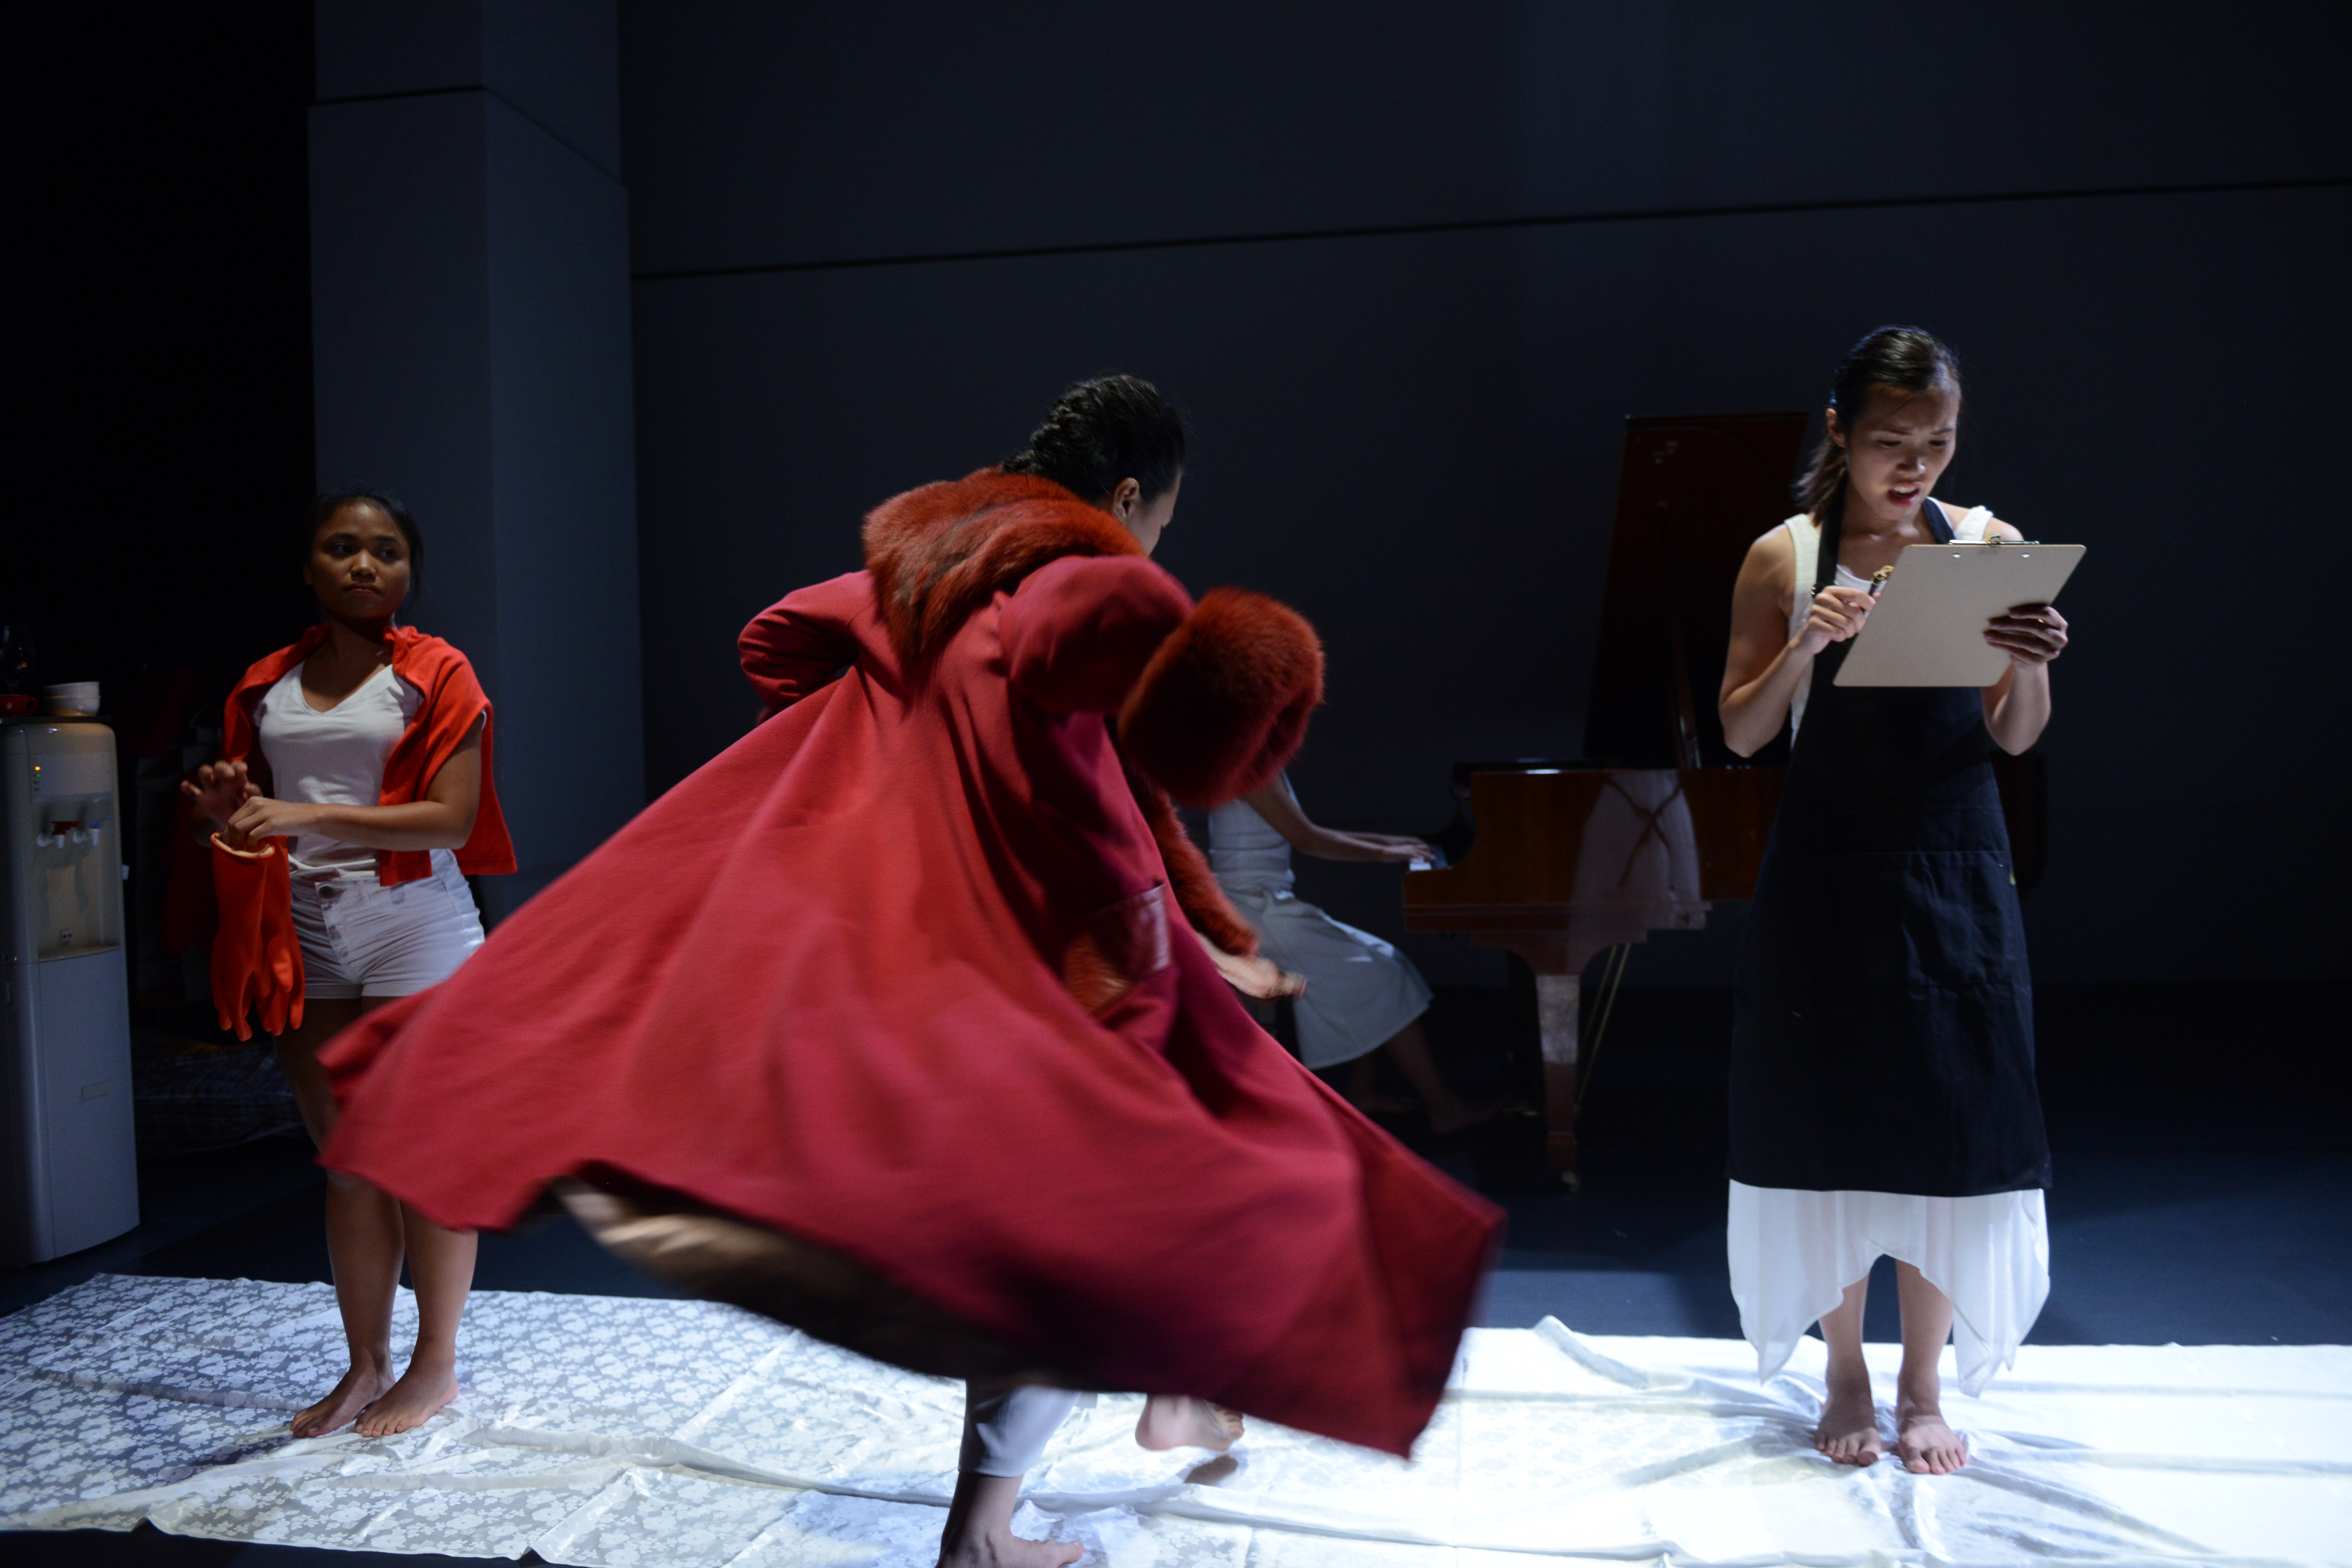 Prisoners were brought to the mock prisonand went through the full booking procedure. | Featuring: Isabella Leung, Russell Terre Aranza | Tagged as: Not The Maids, Show | Photo: Fung Wai Sun |  (Rooftop Productions • Hong Kong Theatre Company)